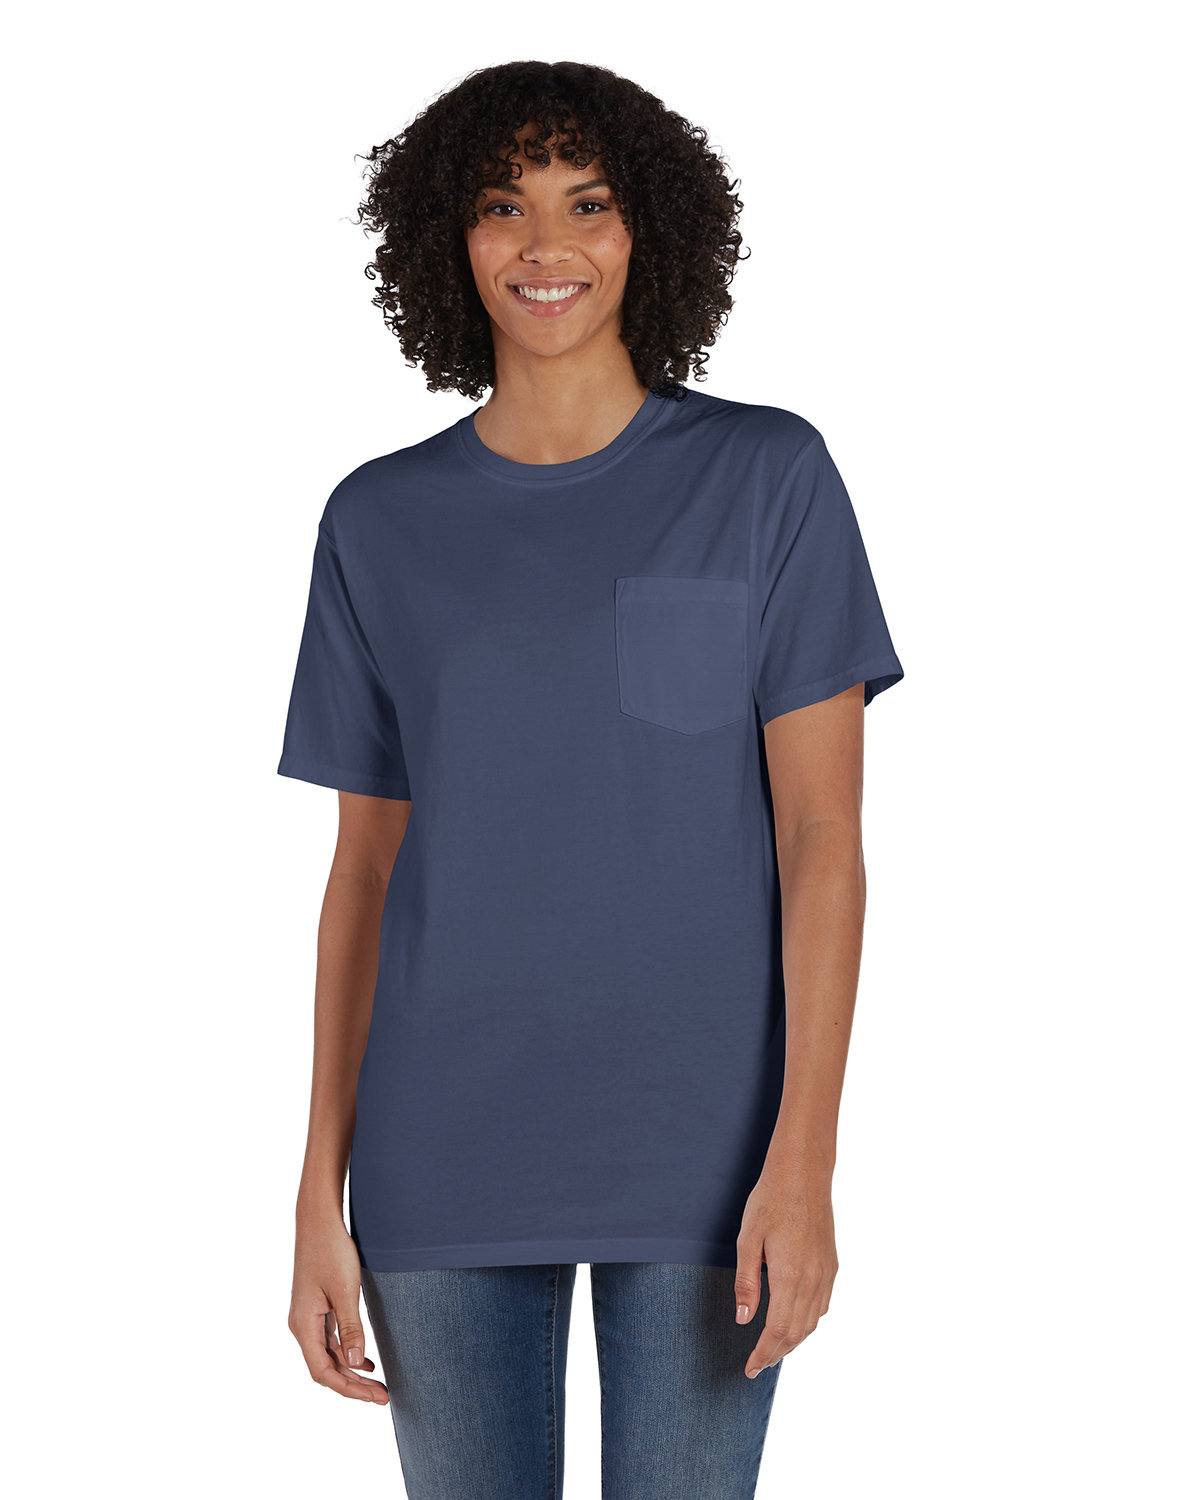 ComfortWash by Hanes Unisex 5.5 oz., 100% Ringspun Cotton Garment-Dyed T-Shirt with Pocket ANCHOR SLATE